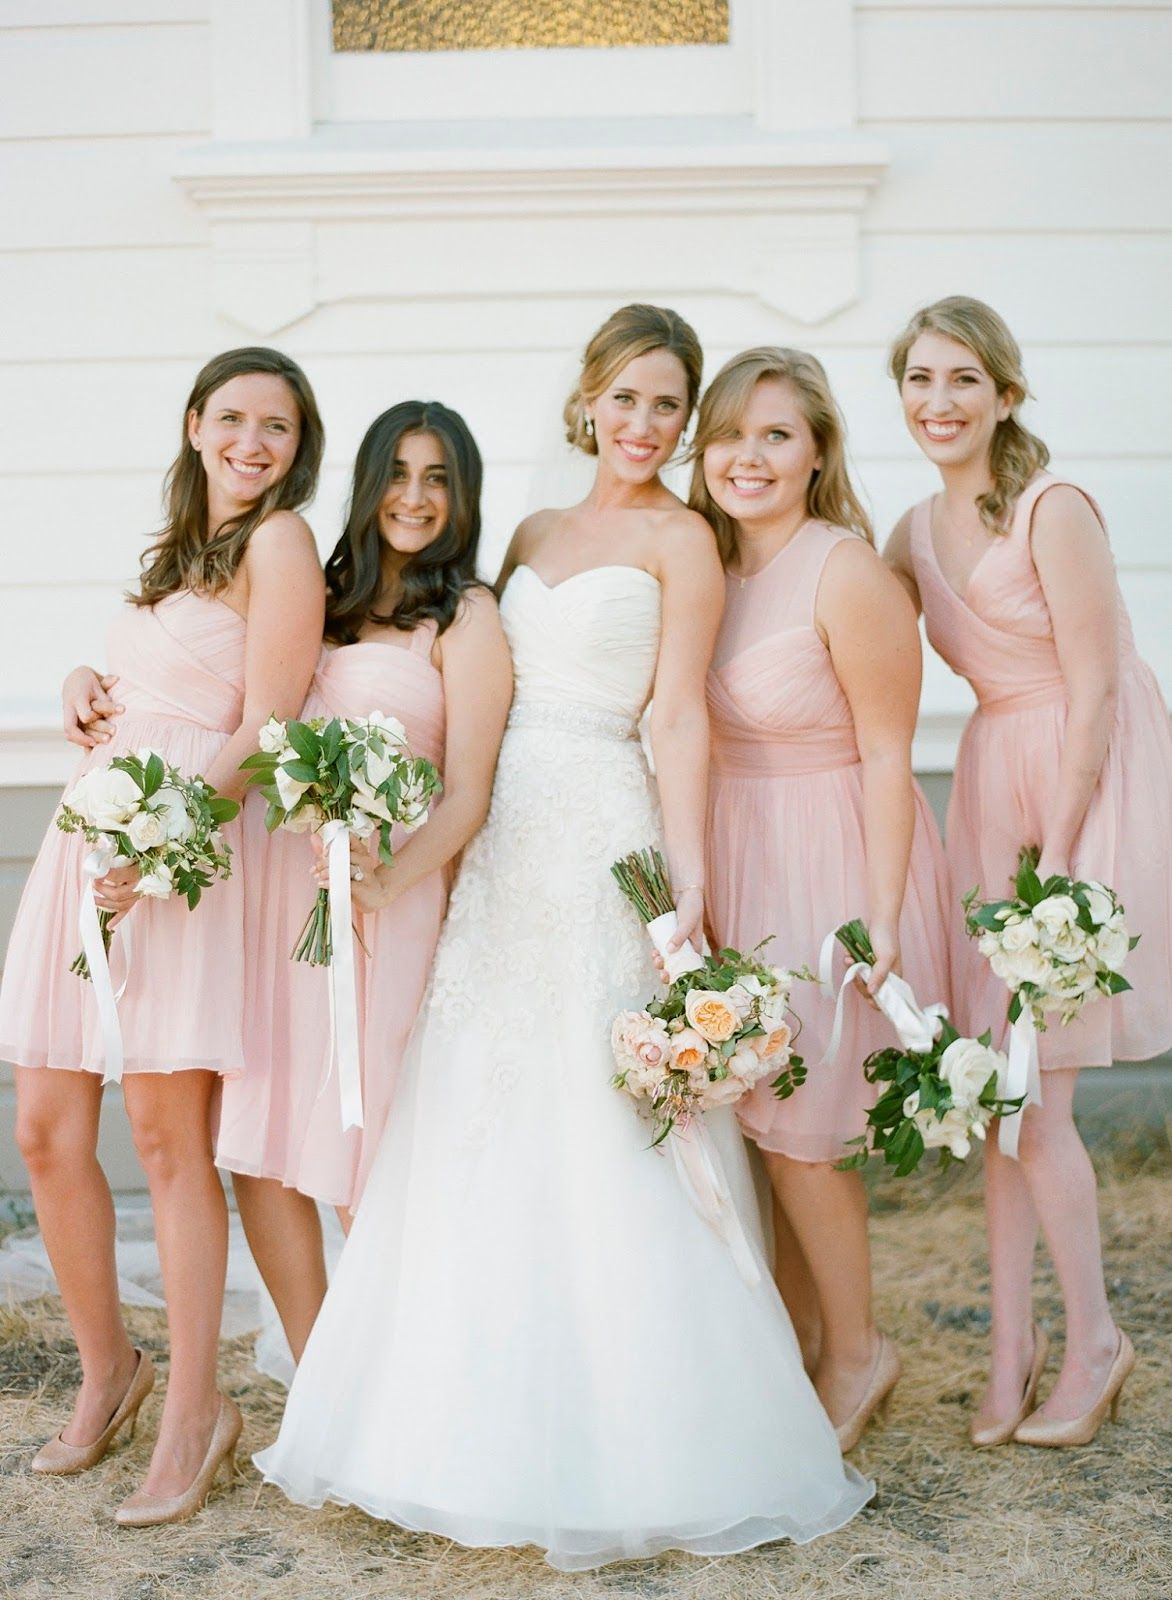 Shannon Becca JCrew Silk Chiffon Misty Rose Color Bridesmaid Dresses